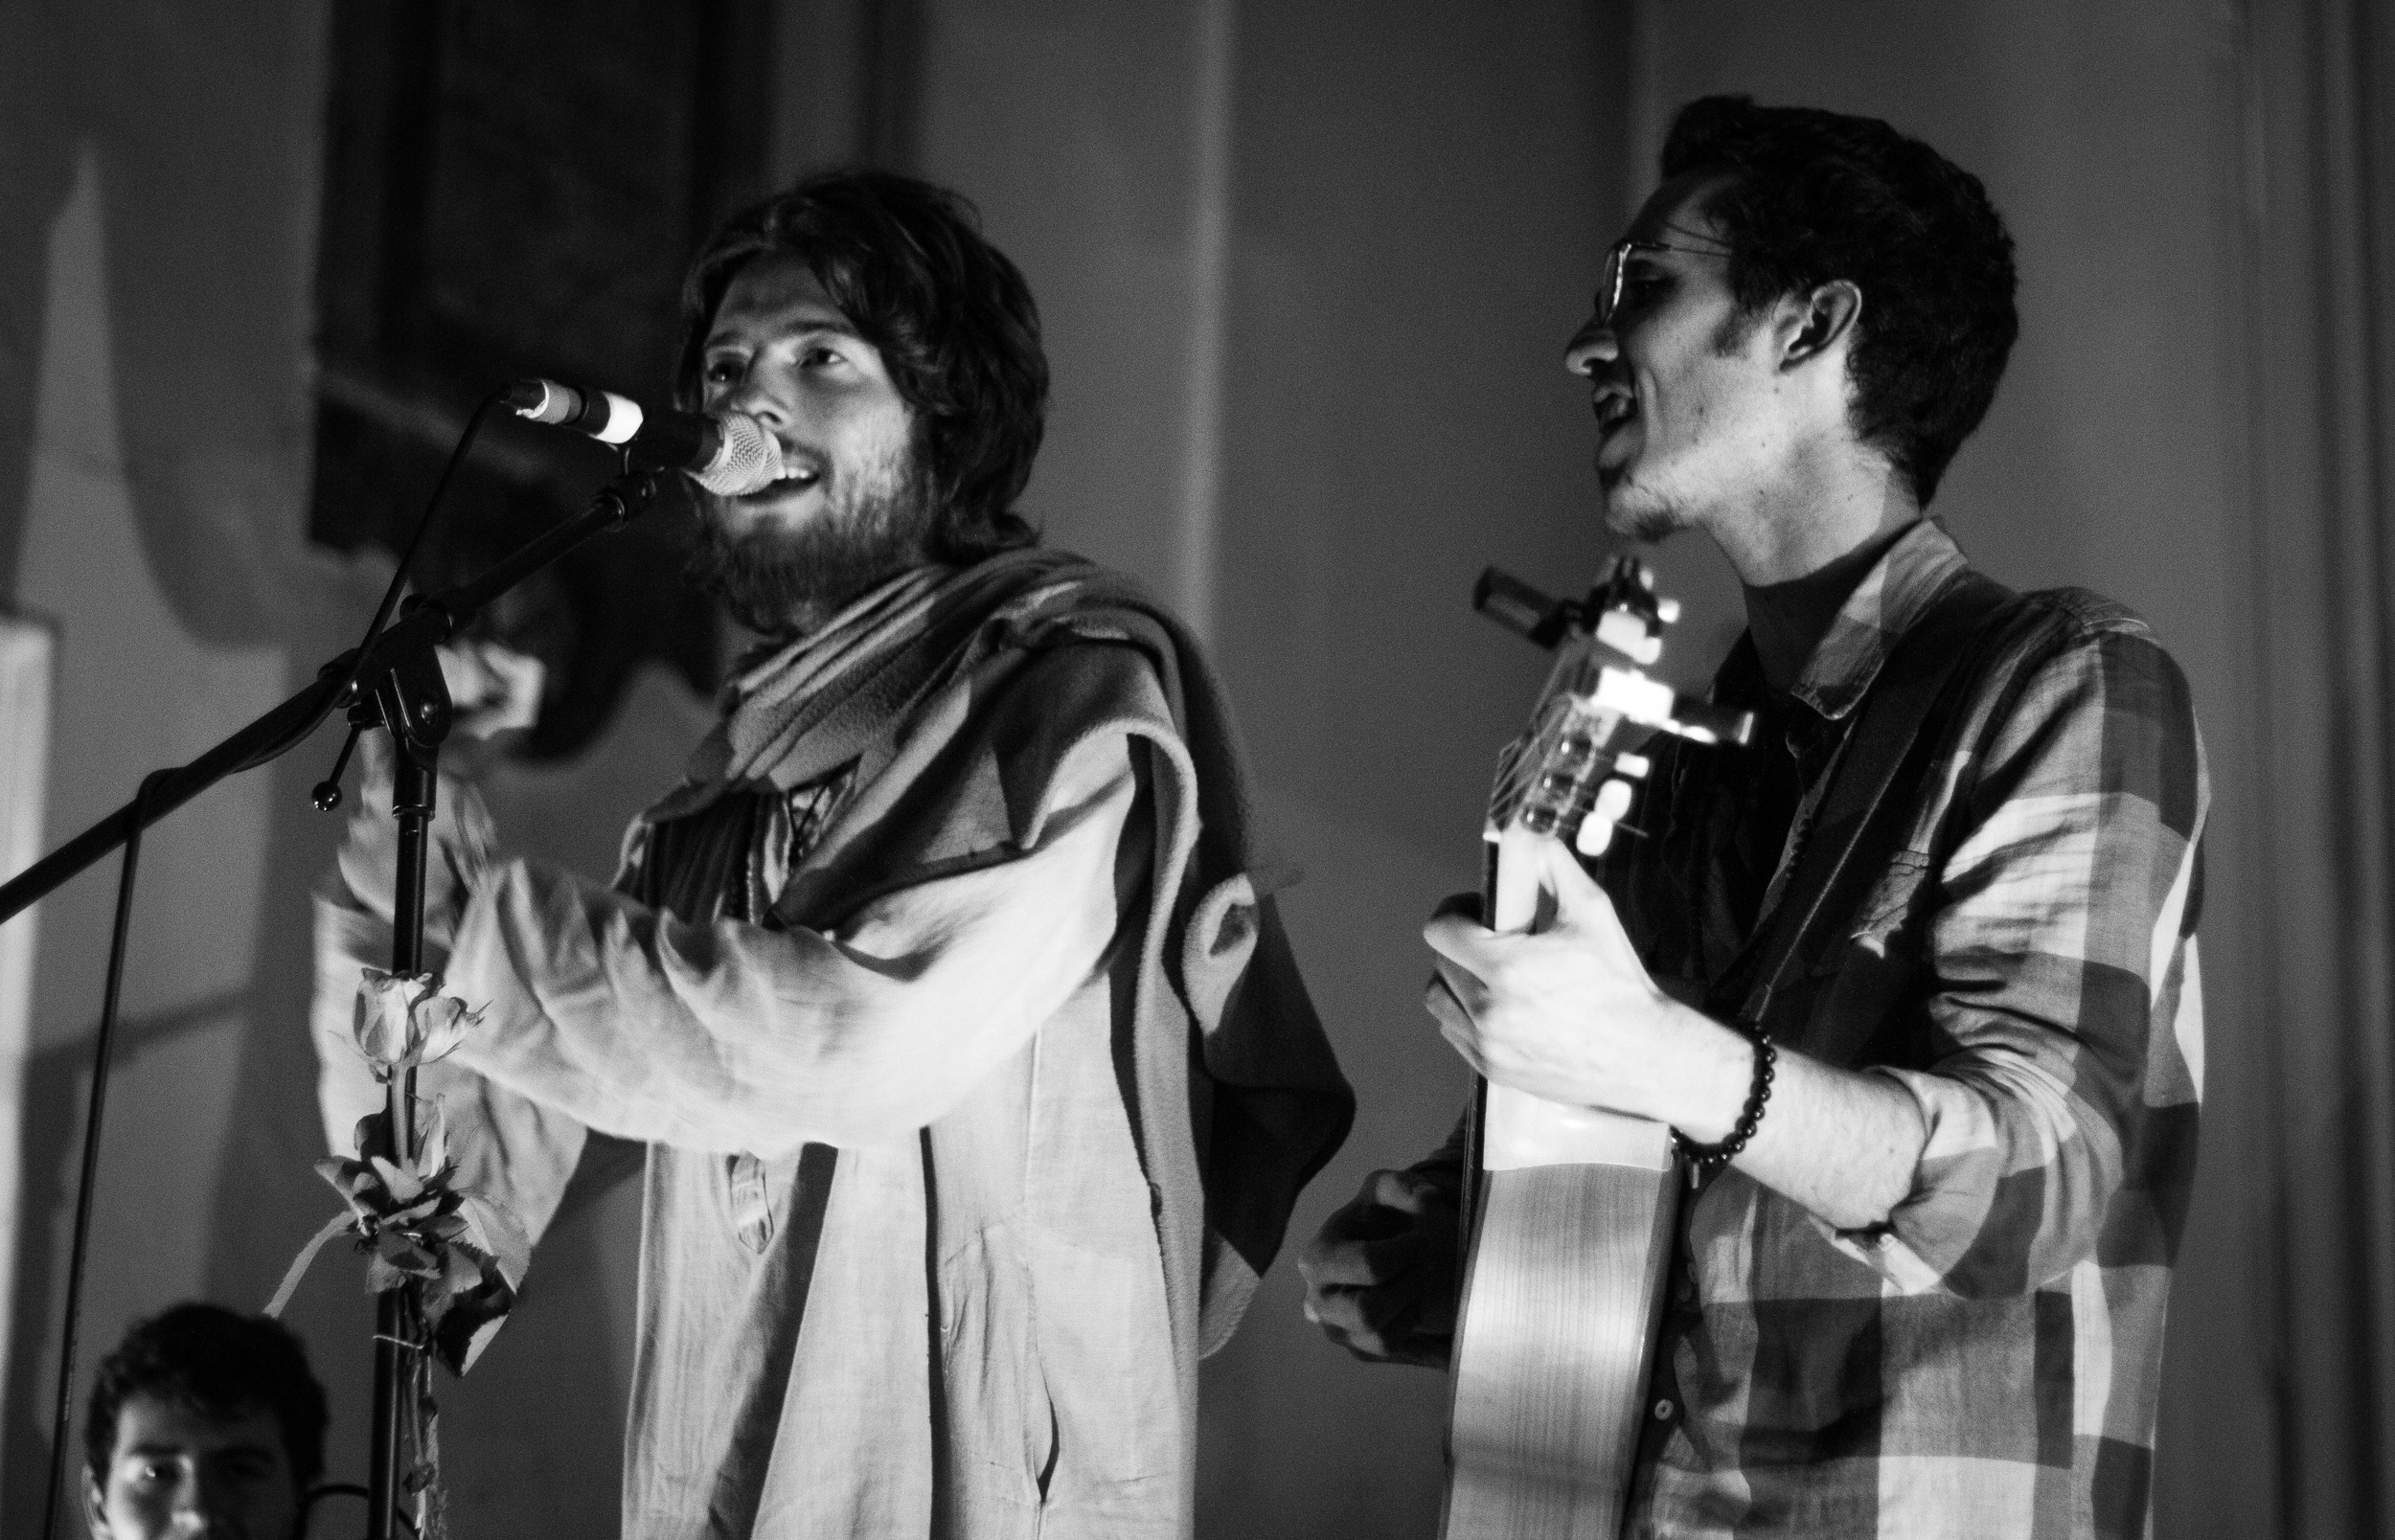 Sam Garrett, left, and Roaman, right, performing at the St Pancras Old Church on Nov 28